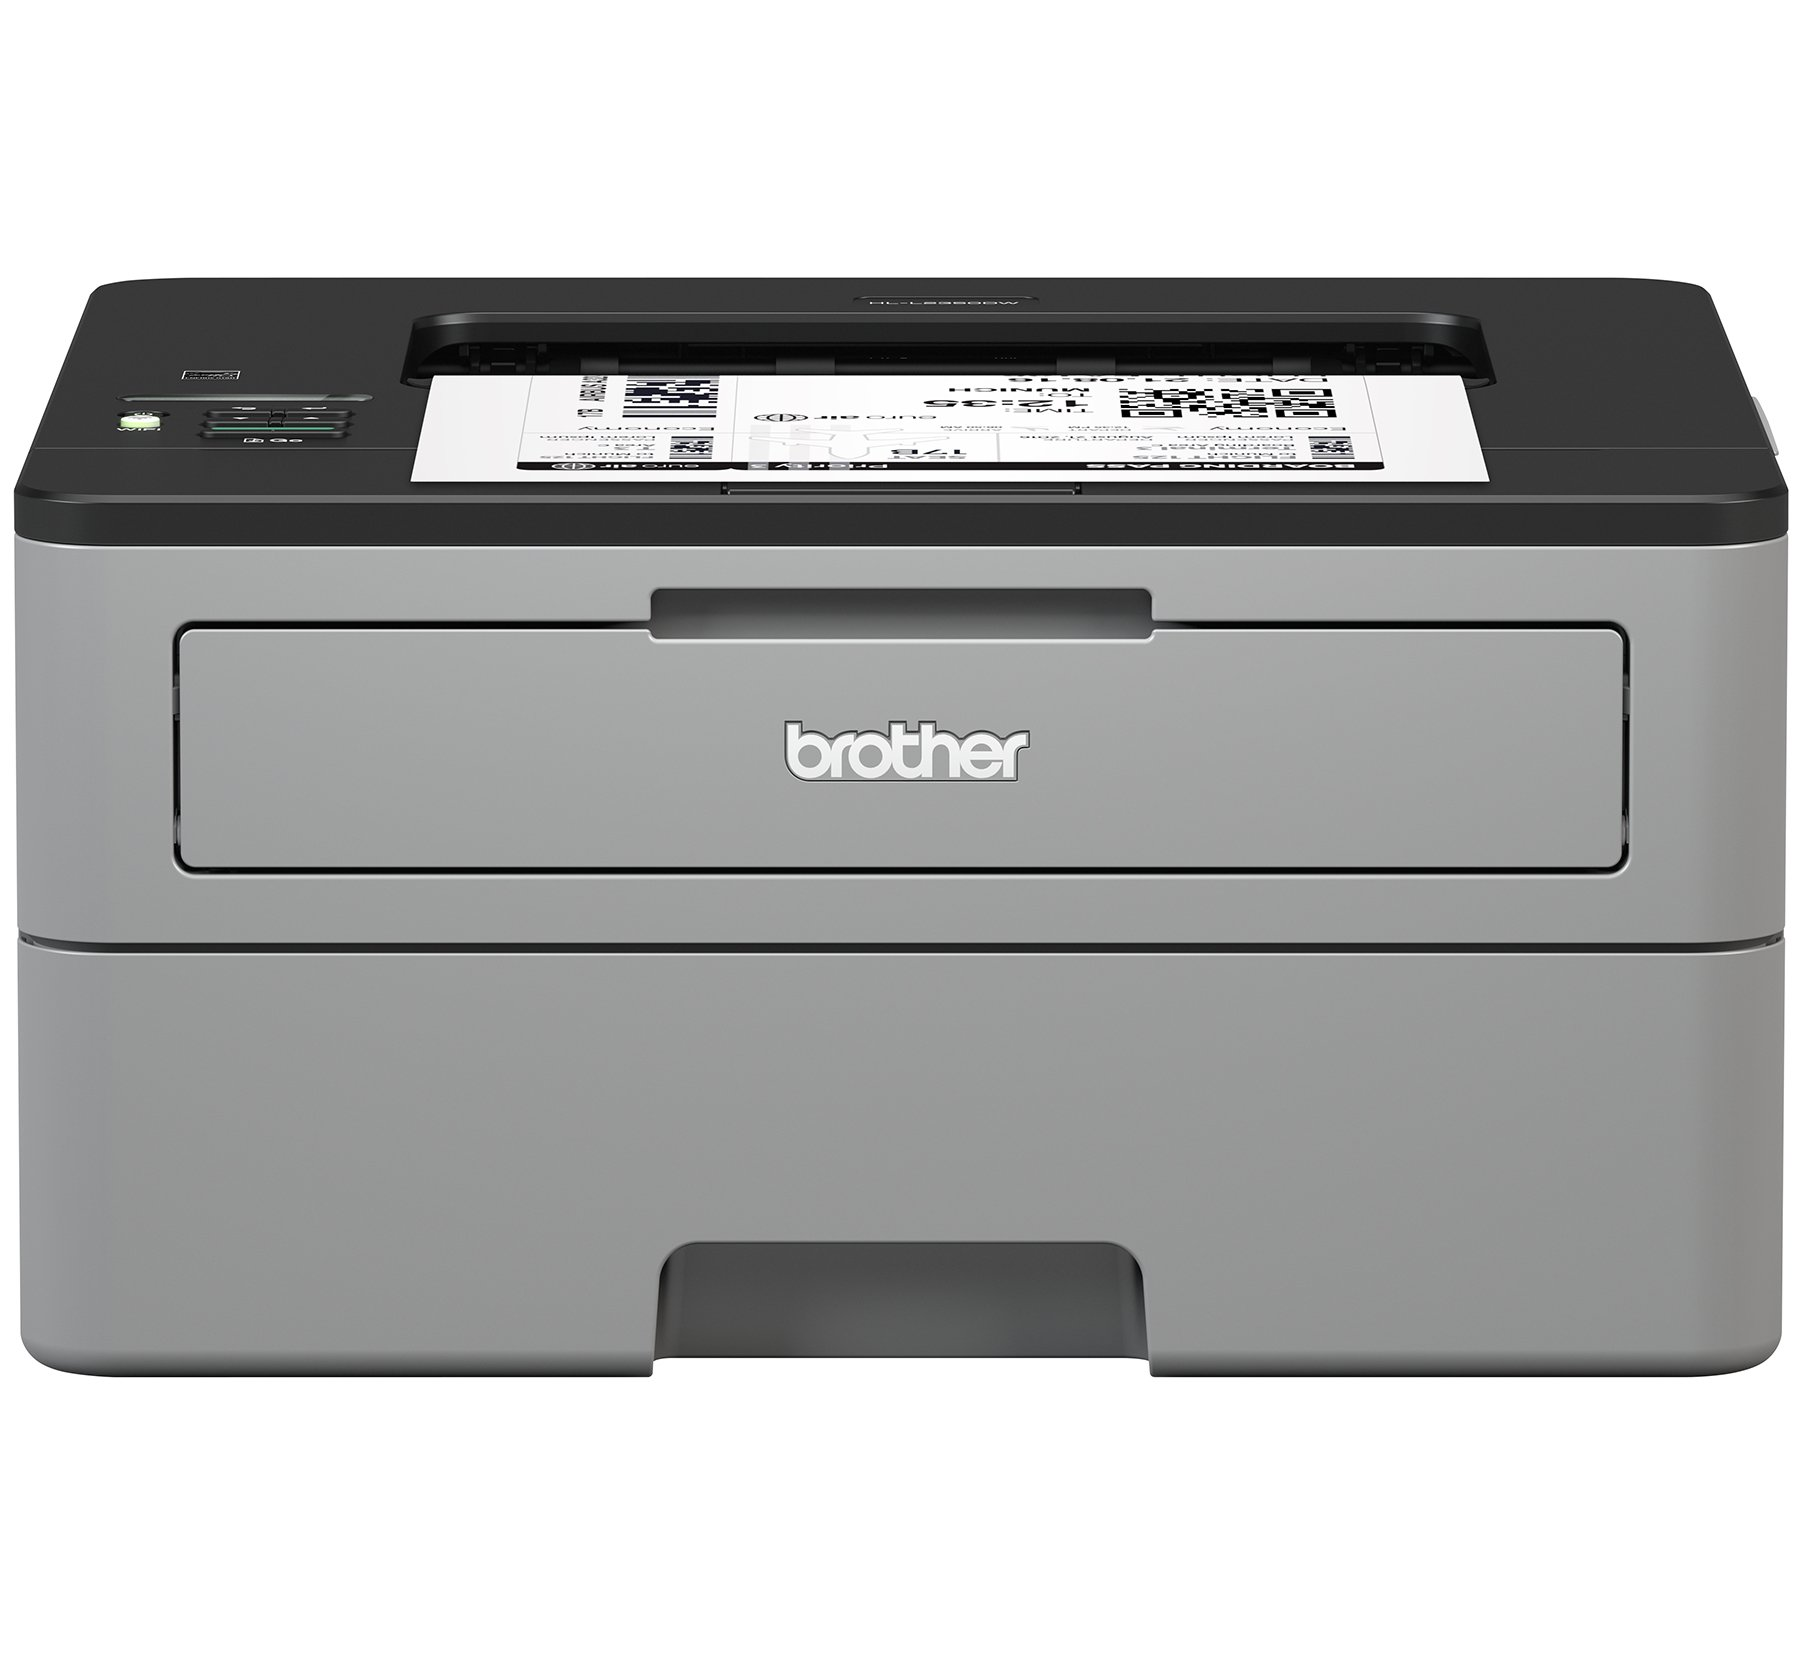 Brother Compact Monochrome Laser Printer, HL-L2350DW, Wireless Printing, Duplex Two-Sided Printing, Amazon Dash Replenishment Enabled by Brother